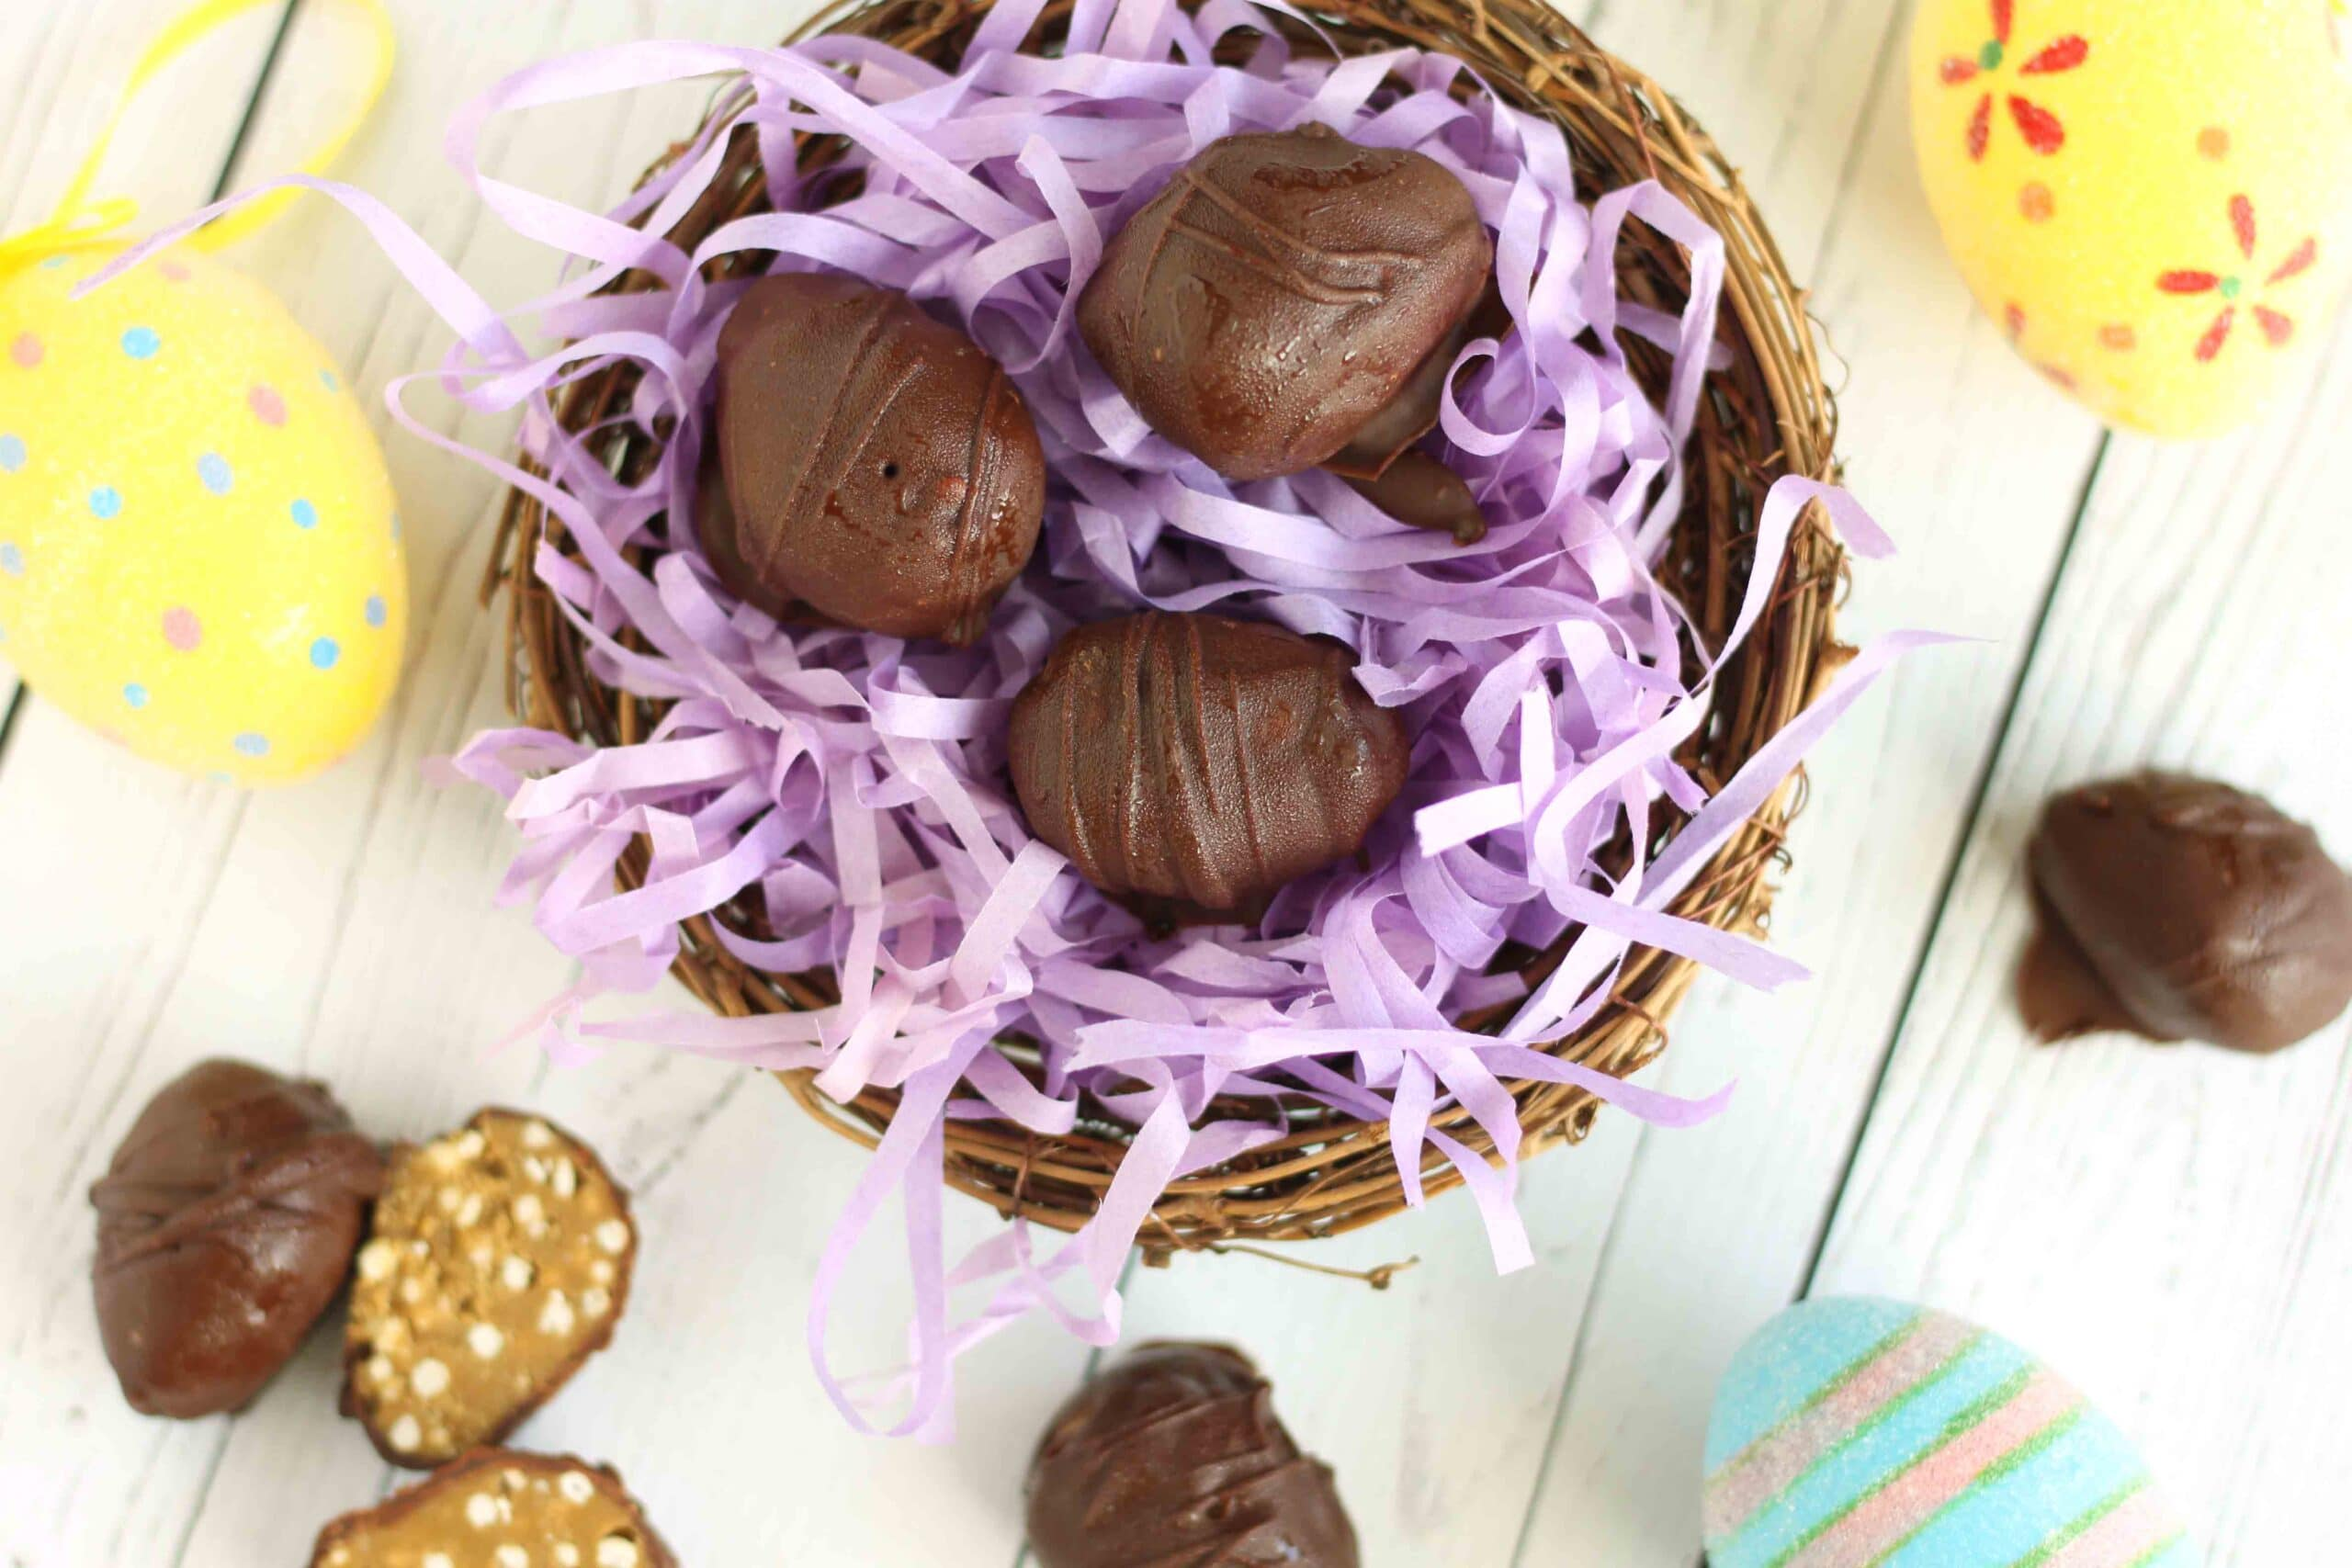 Chocolate Sunflower Butter Eggs by @jesselwellness #easter